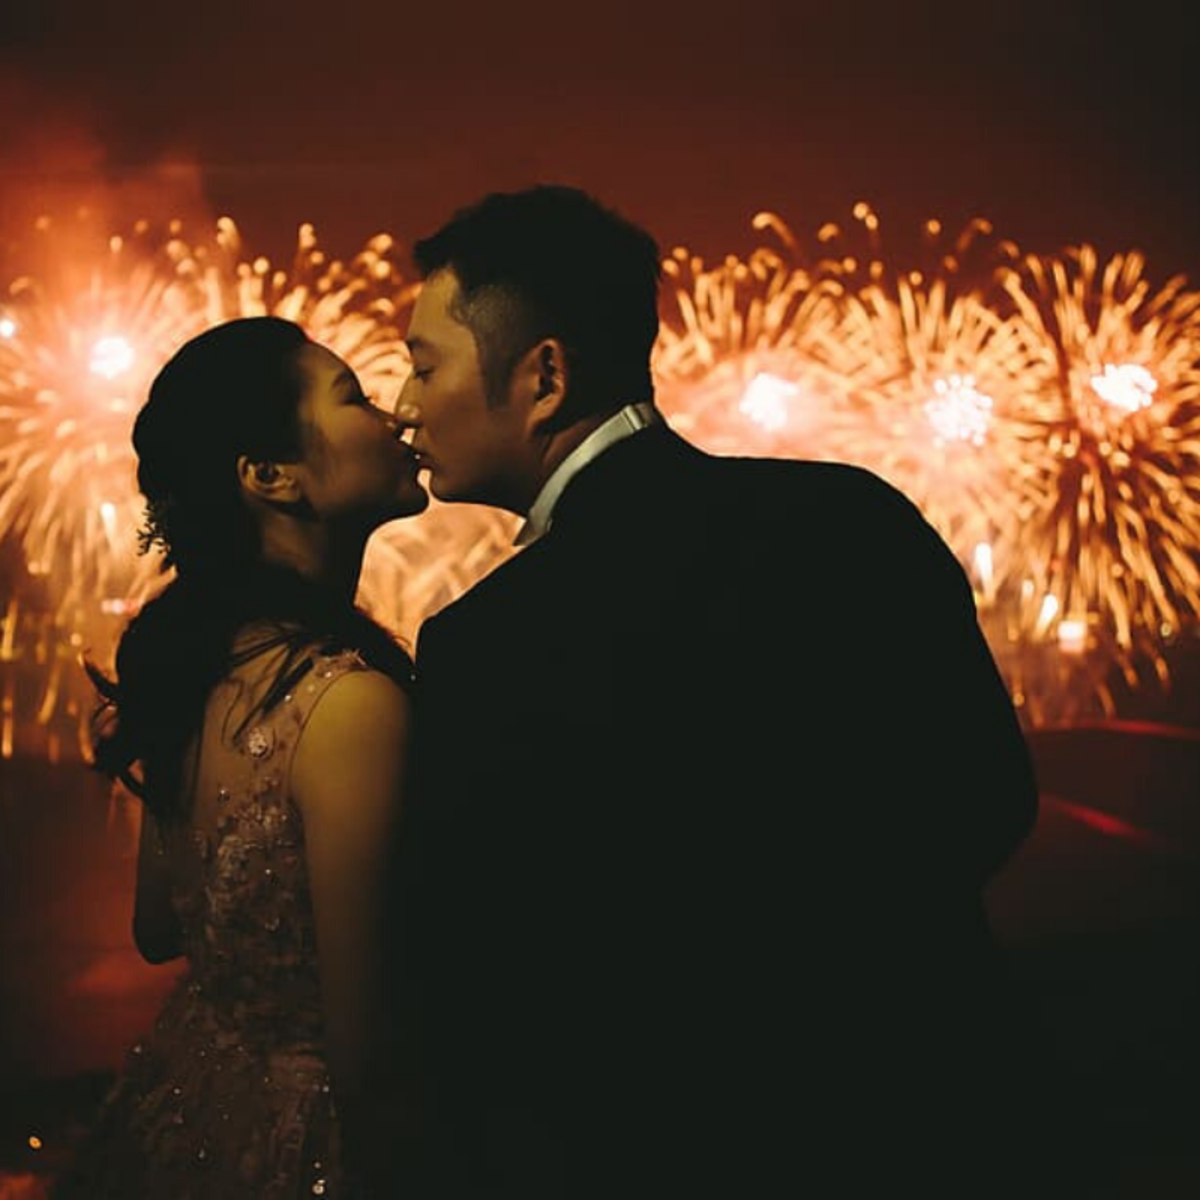 Midnight fireworks and kisses are both popular New Year's traditions.